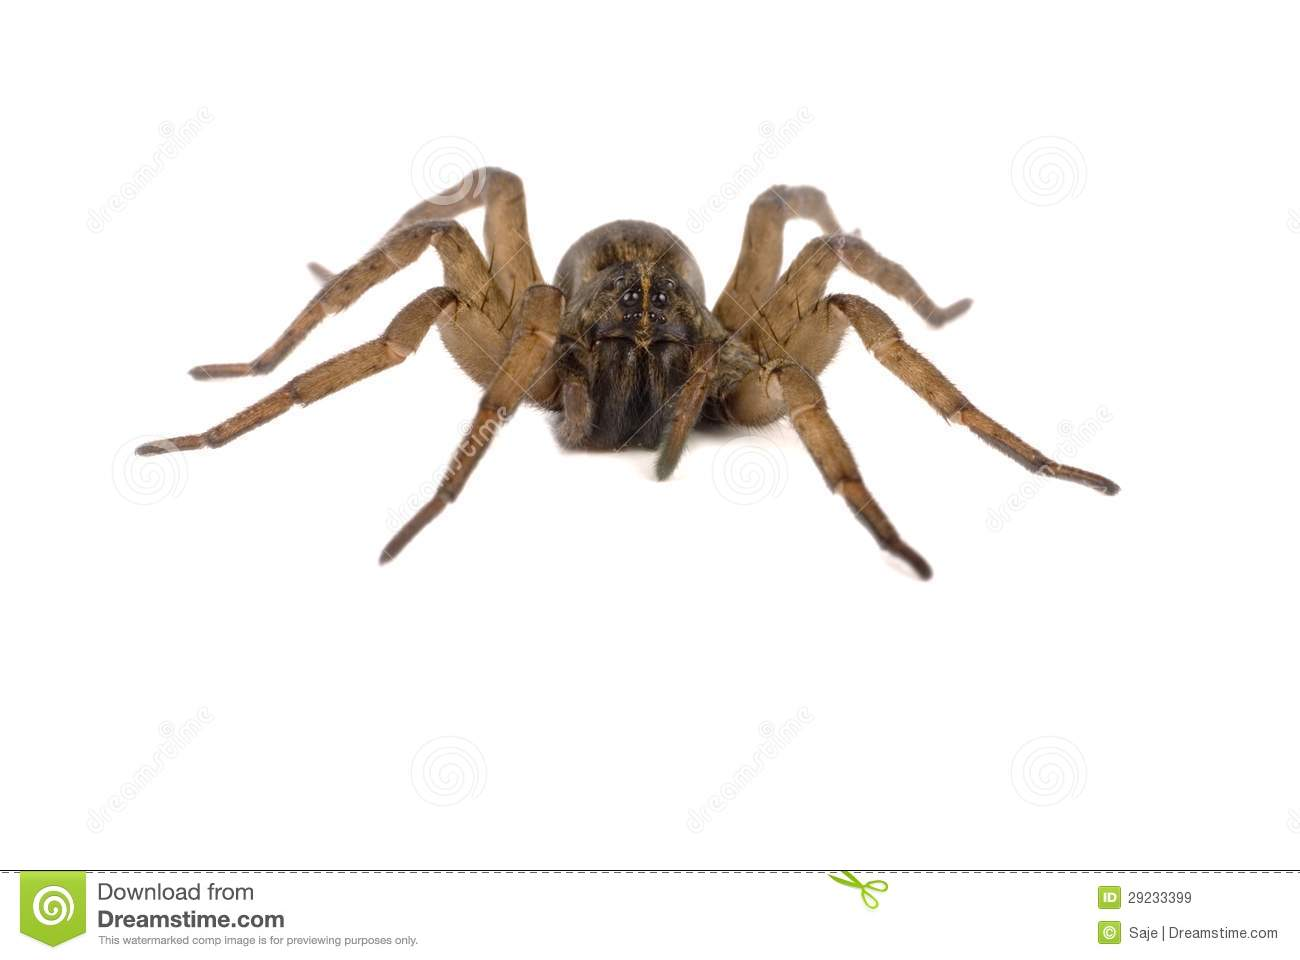 Wolf Spider clipart #3, Download drawings